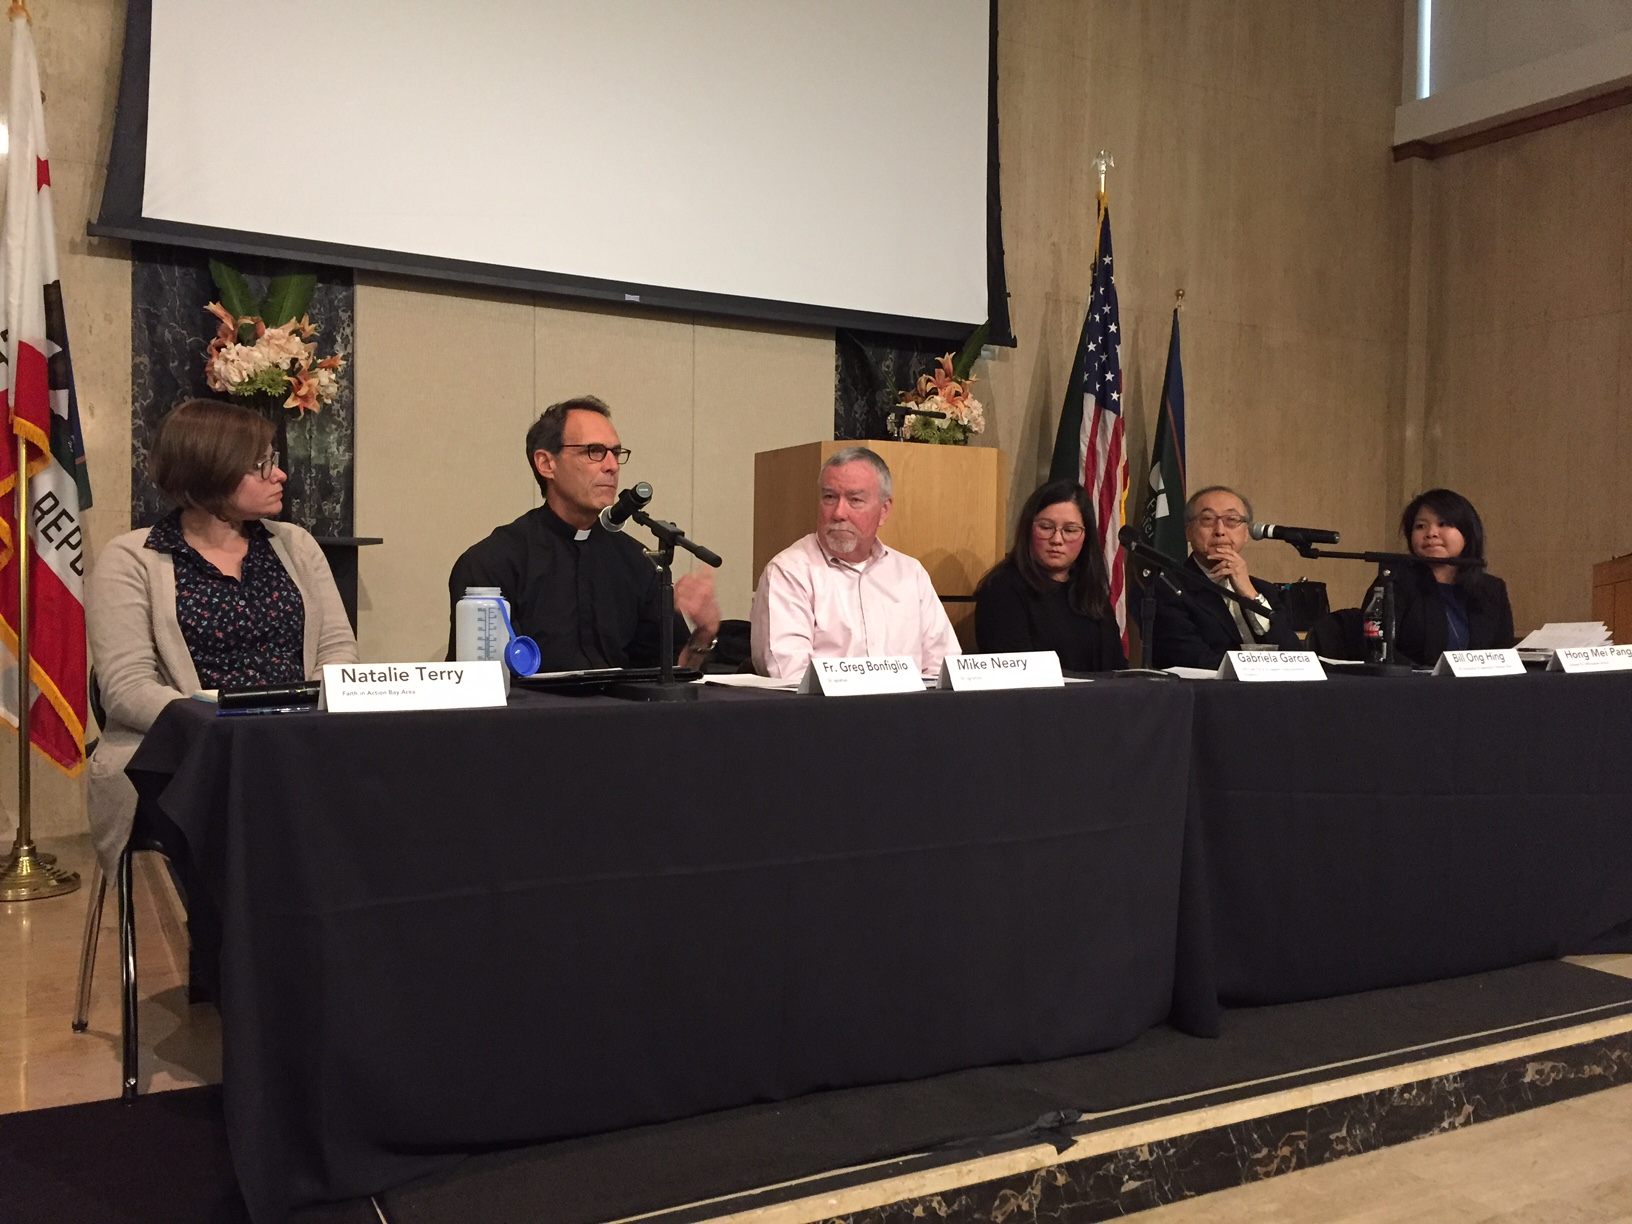 Panelists speaking on immigration and sanctuary